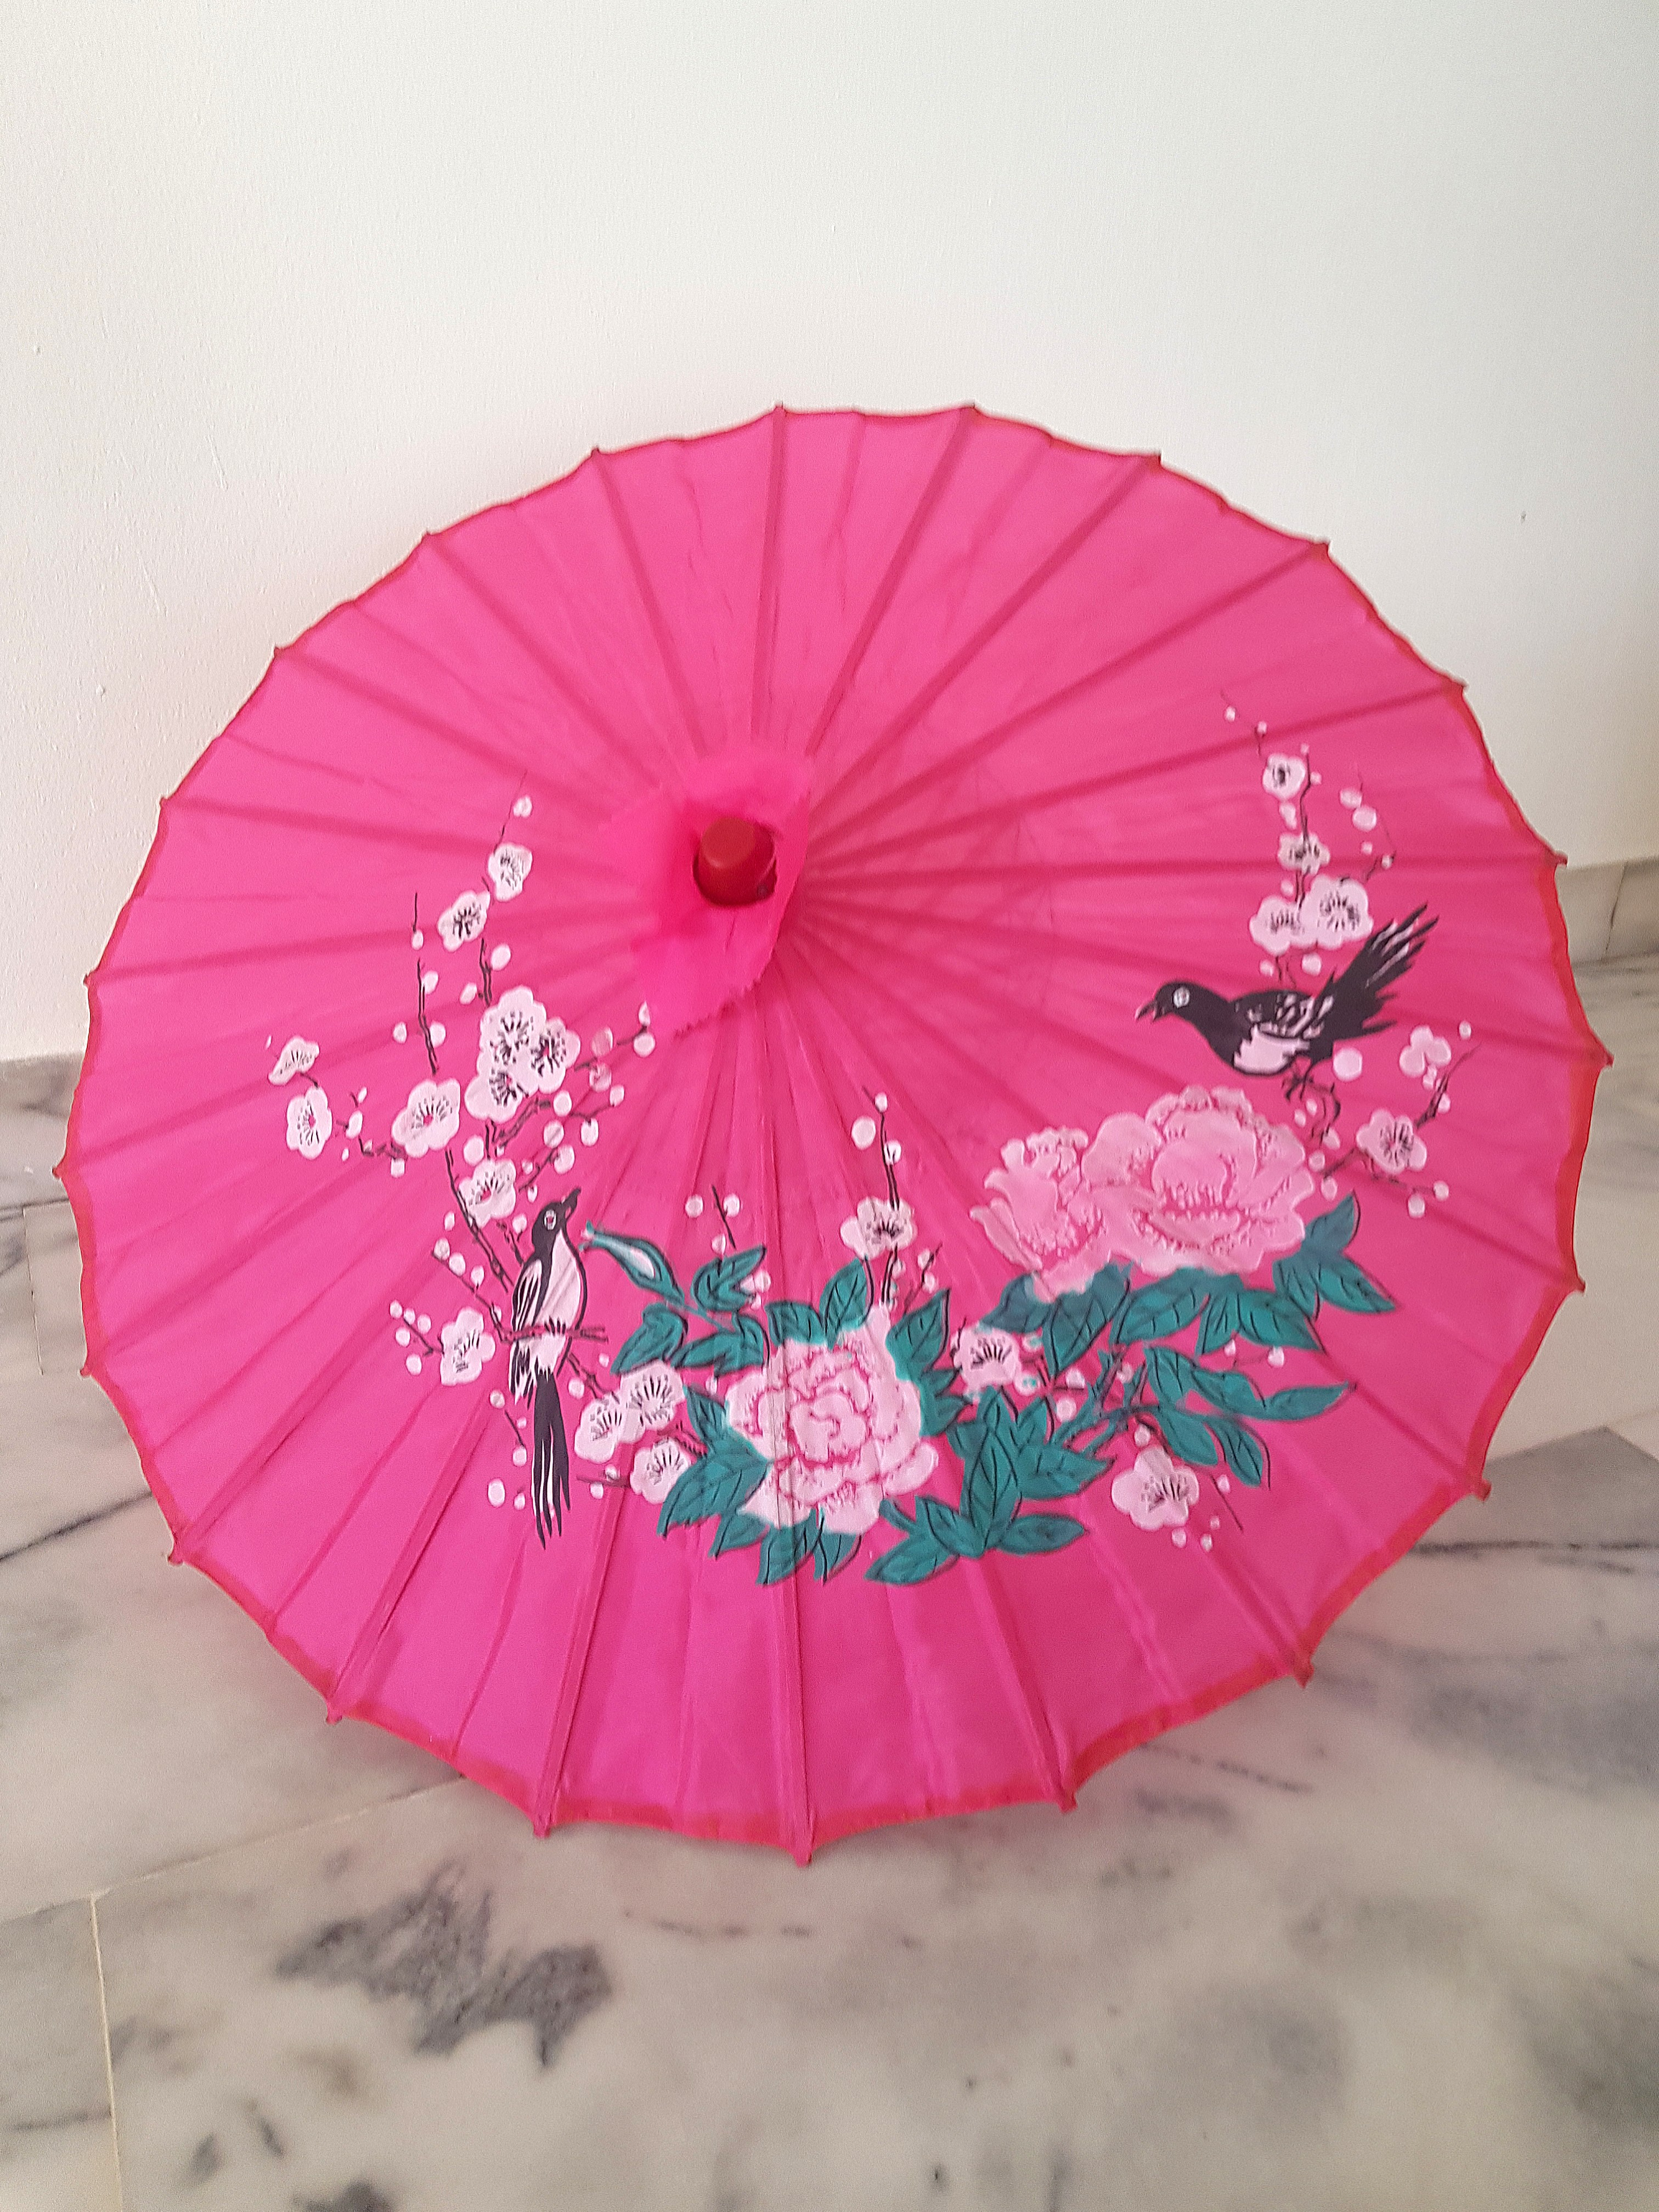 Create paper umbrella craft for party glass decor Small Paper Umbrella Design Craft Others On Carousell